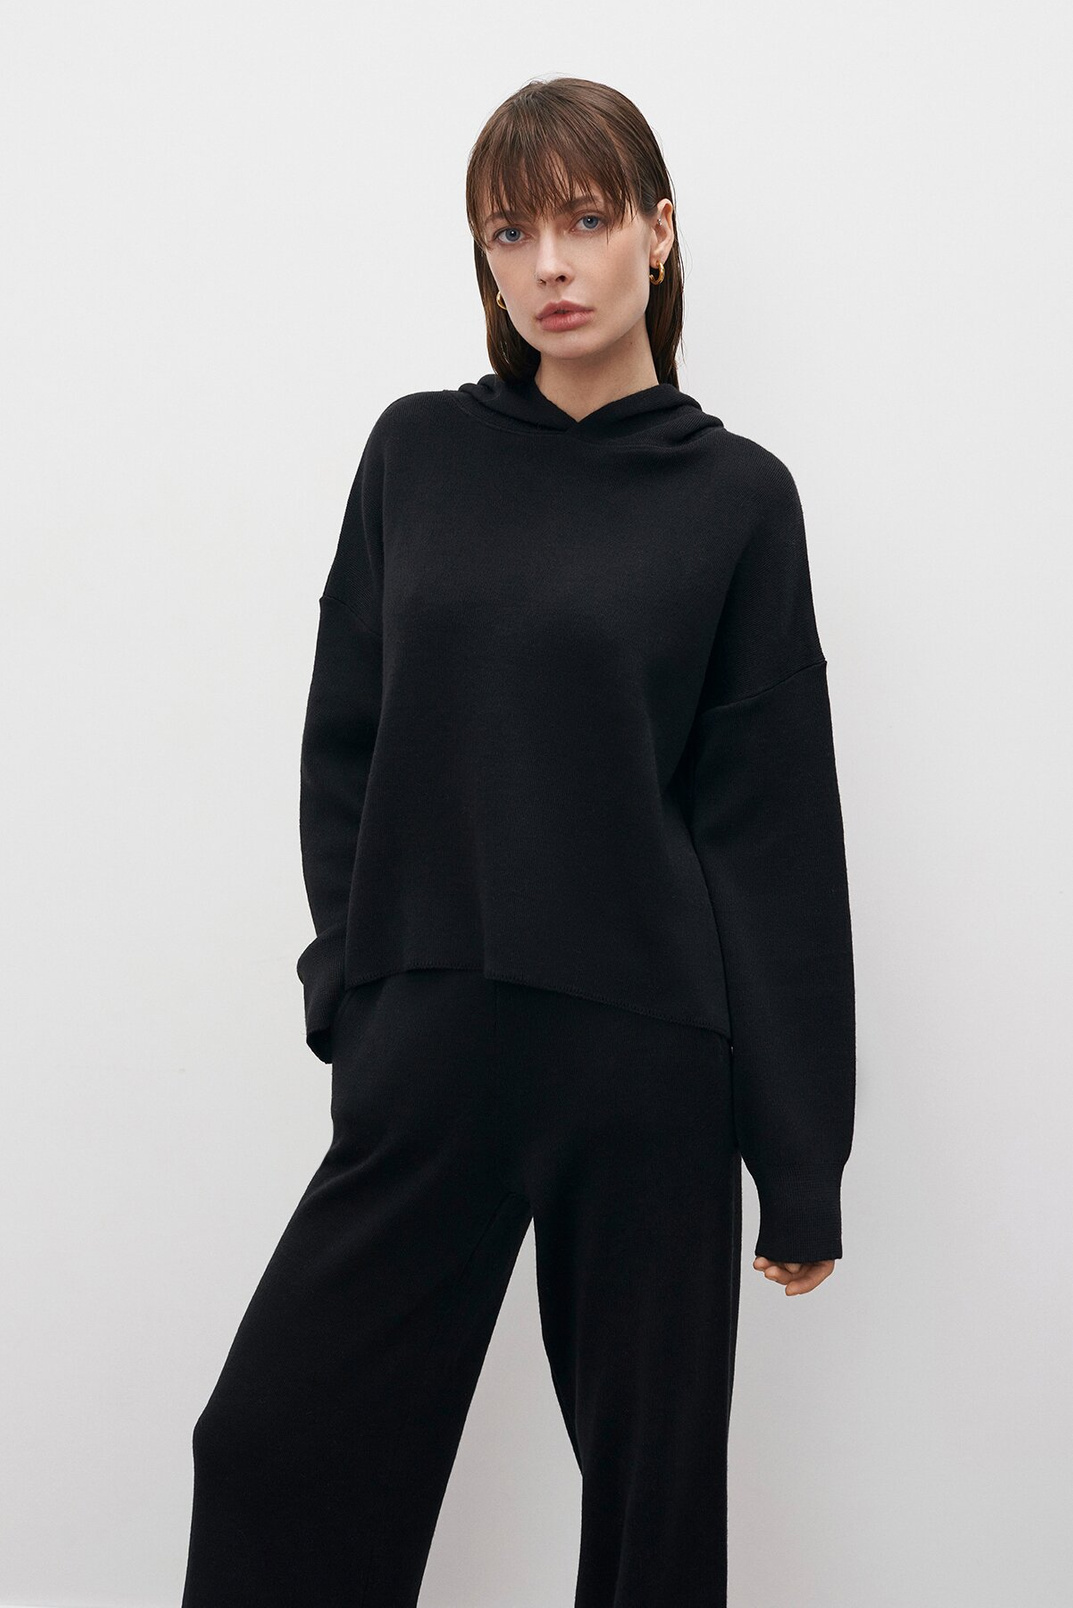 Knitted hoodie, Black, XS-S